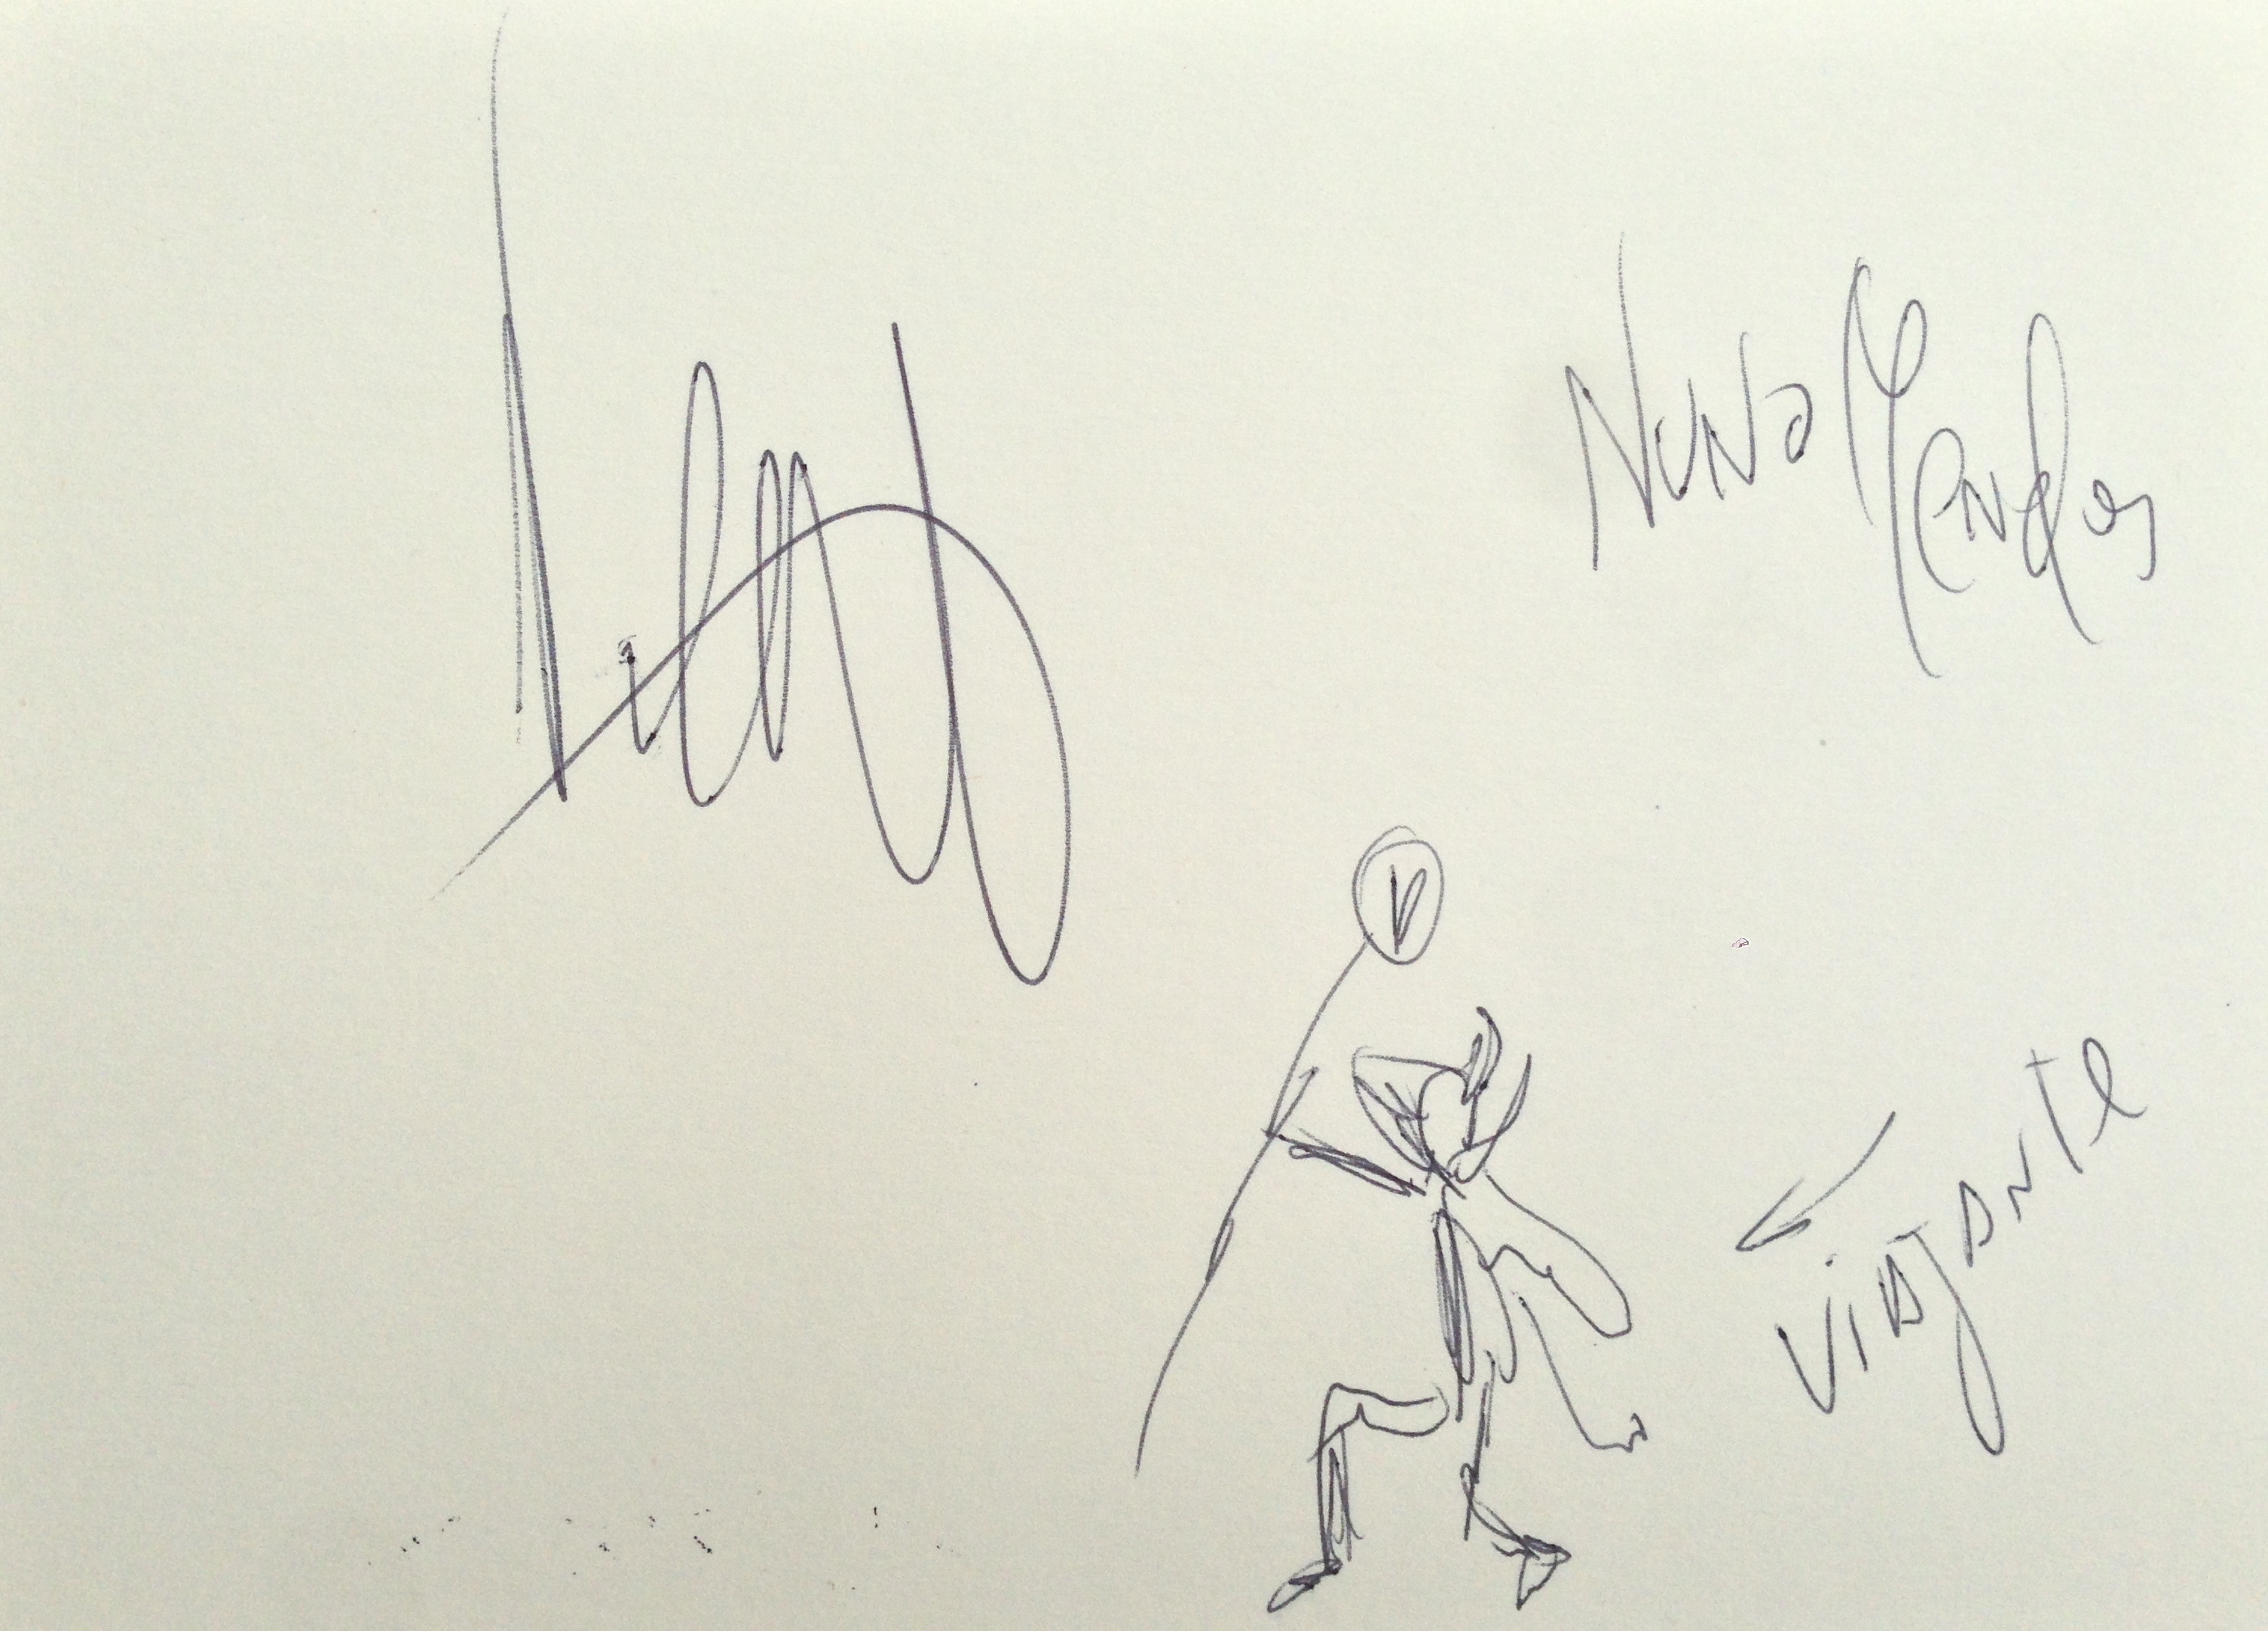 Lot 25 - Nuno Mendez Chef at the Chiltern Firehouse Emblem from the Viajante restuarant signed and inscribed